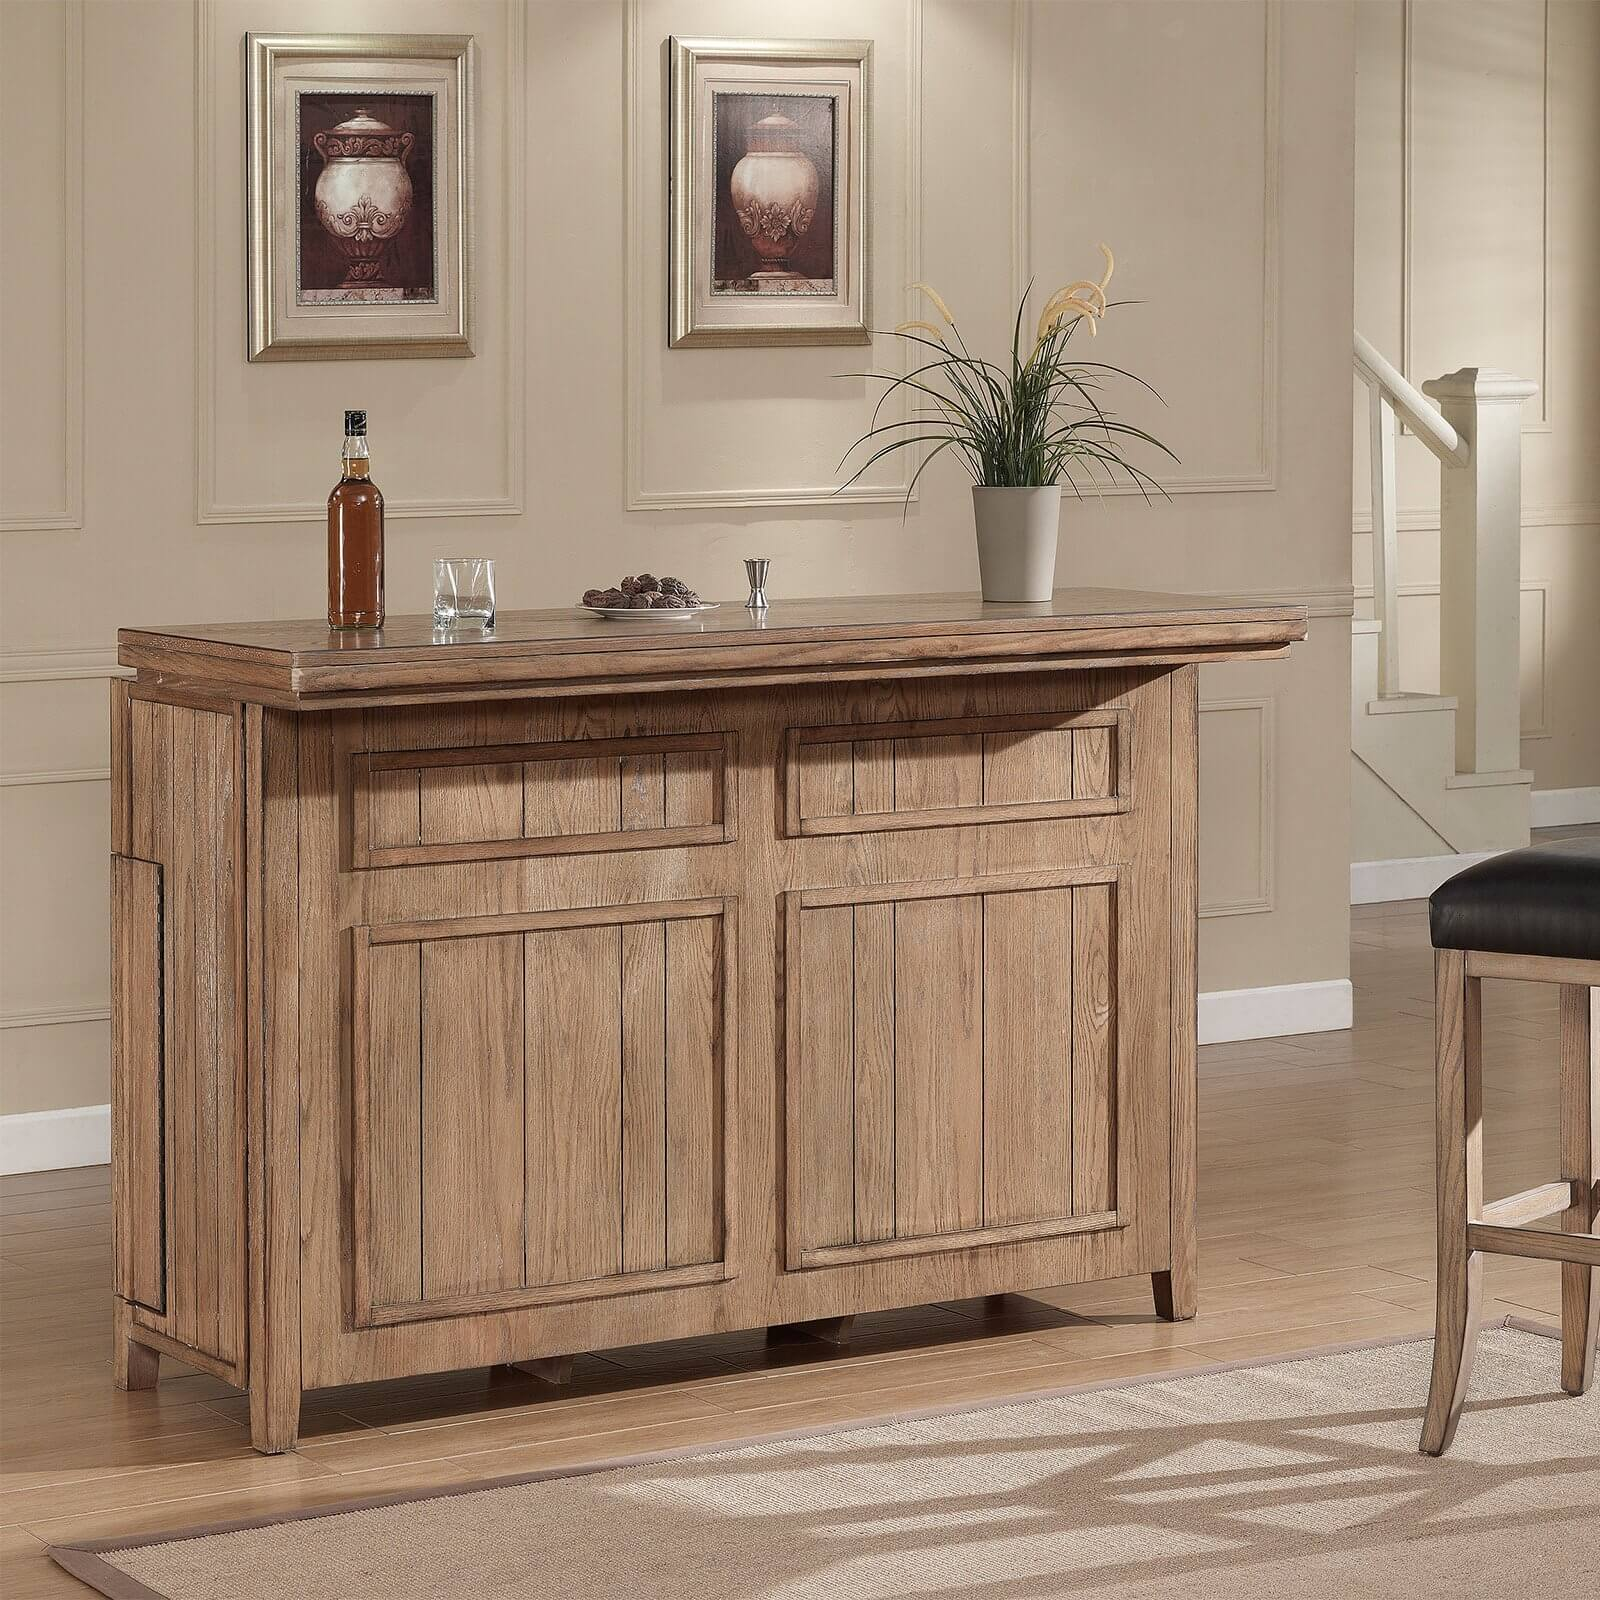 Sophisticated Storage This Rustic Home Bar Cabinet Unit Home Bar Sets Wine Bars Rustic Home Accessories Rustic Home Accessories Wholesale As You Can Amount home decor Rustic Home Accessory